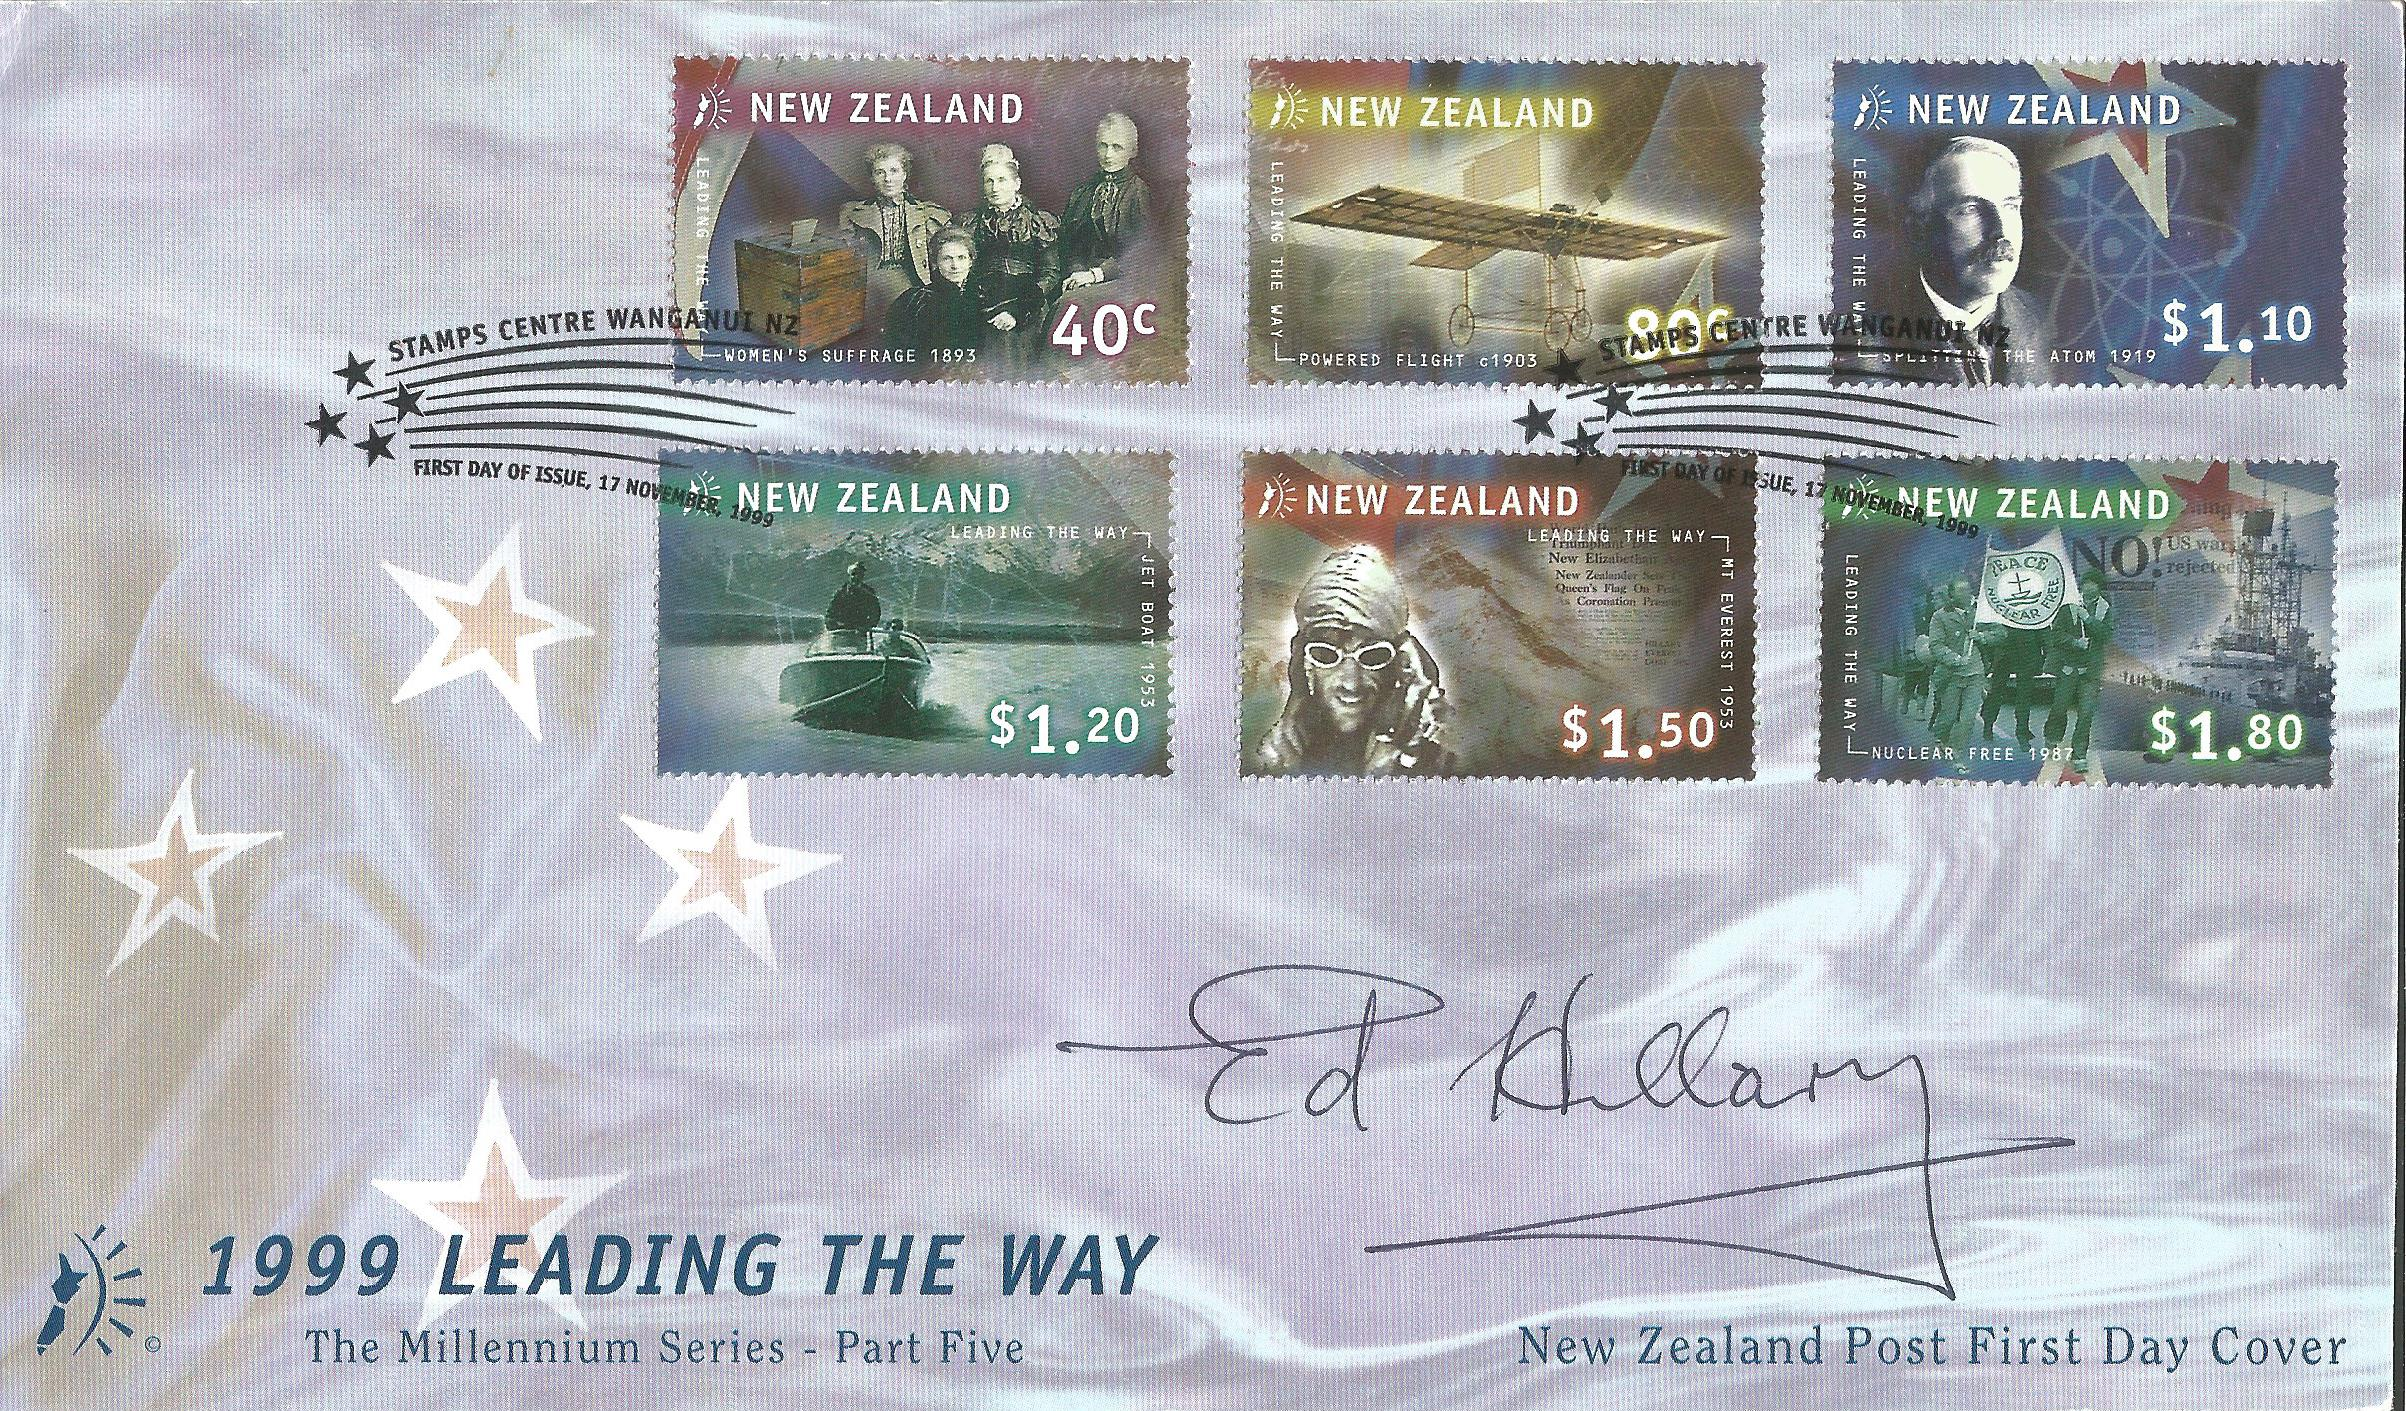 Lot 36 - Sir Edmund Hillary signed 1999 New Zealand leading the way FDC. One of the stamps features Hillary's